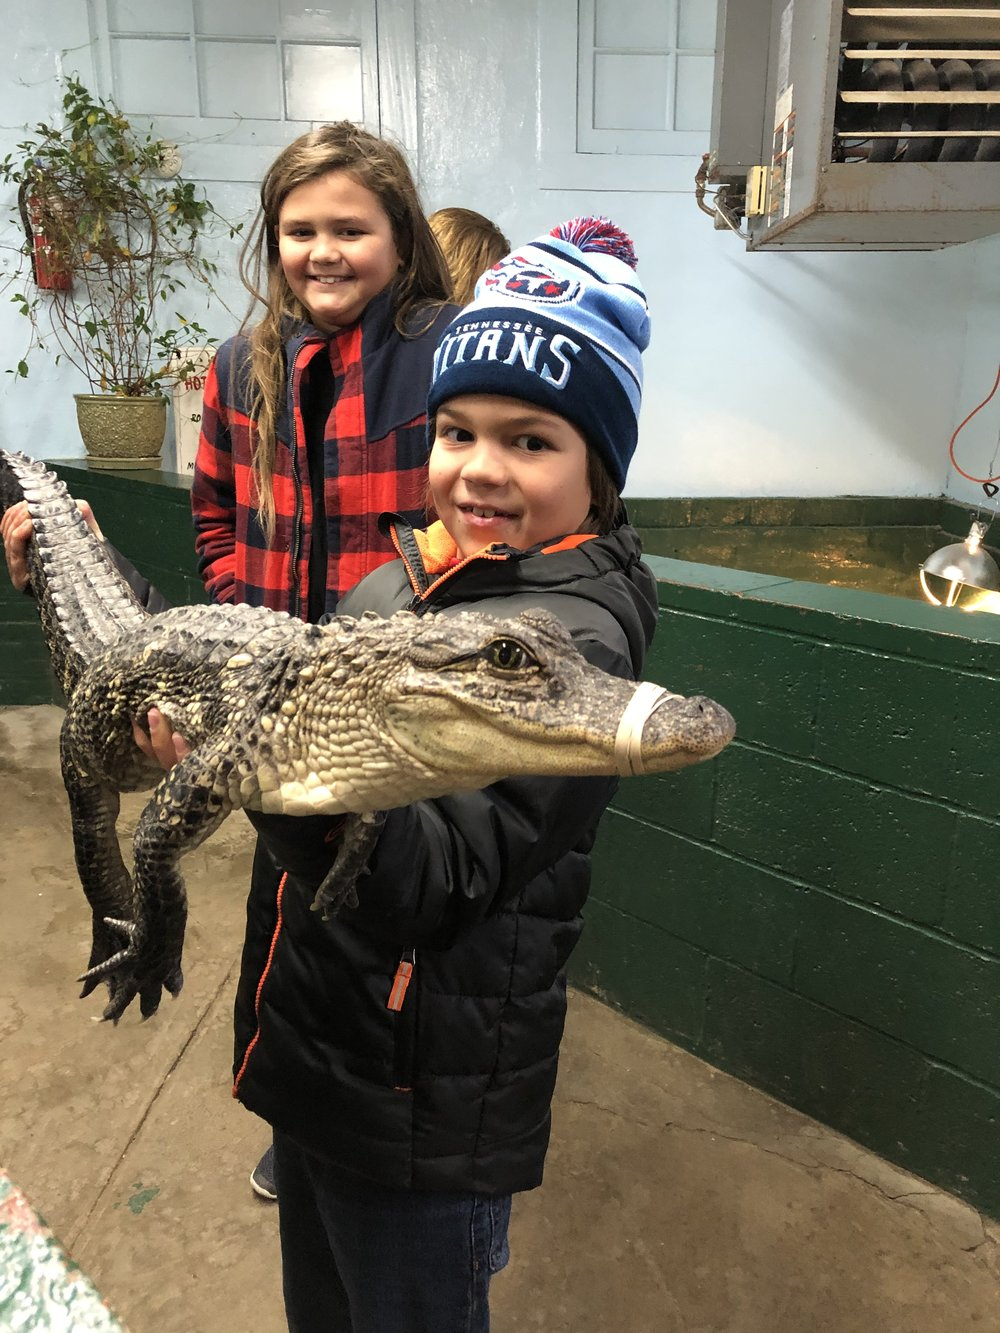 Arkansas Alligator Farm and Petting Zoo, Things to do in Hot Springs, Arkansas via Weekend Trips from Nashville